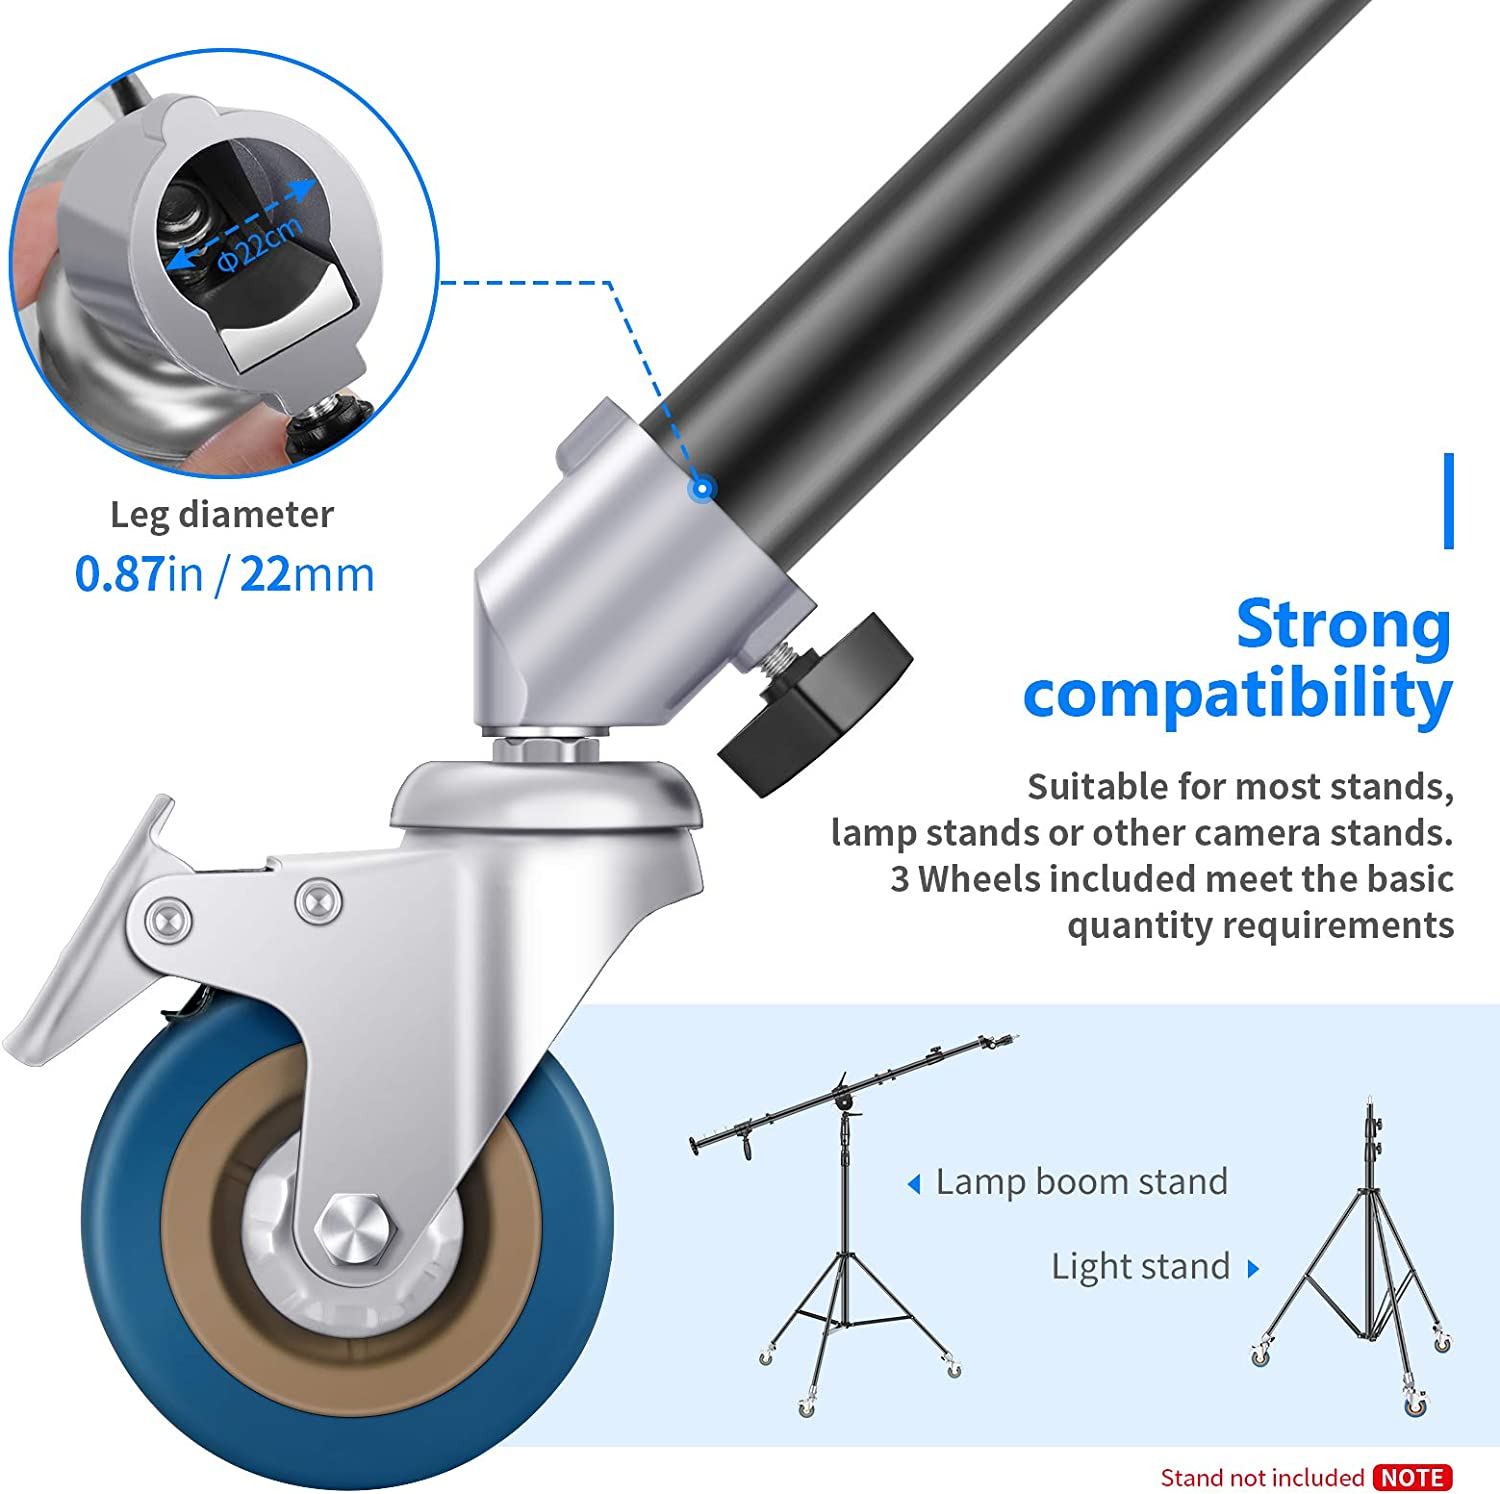 Neewer 3 Packs Professional Swivel Caster Wheels Set with 22mm Diameter Durable Iron Construction with Rubber Base Compatible with Photography Light Stand for Studio Photo Video Shooting